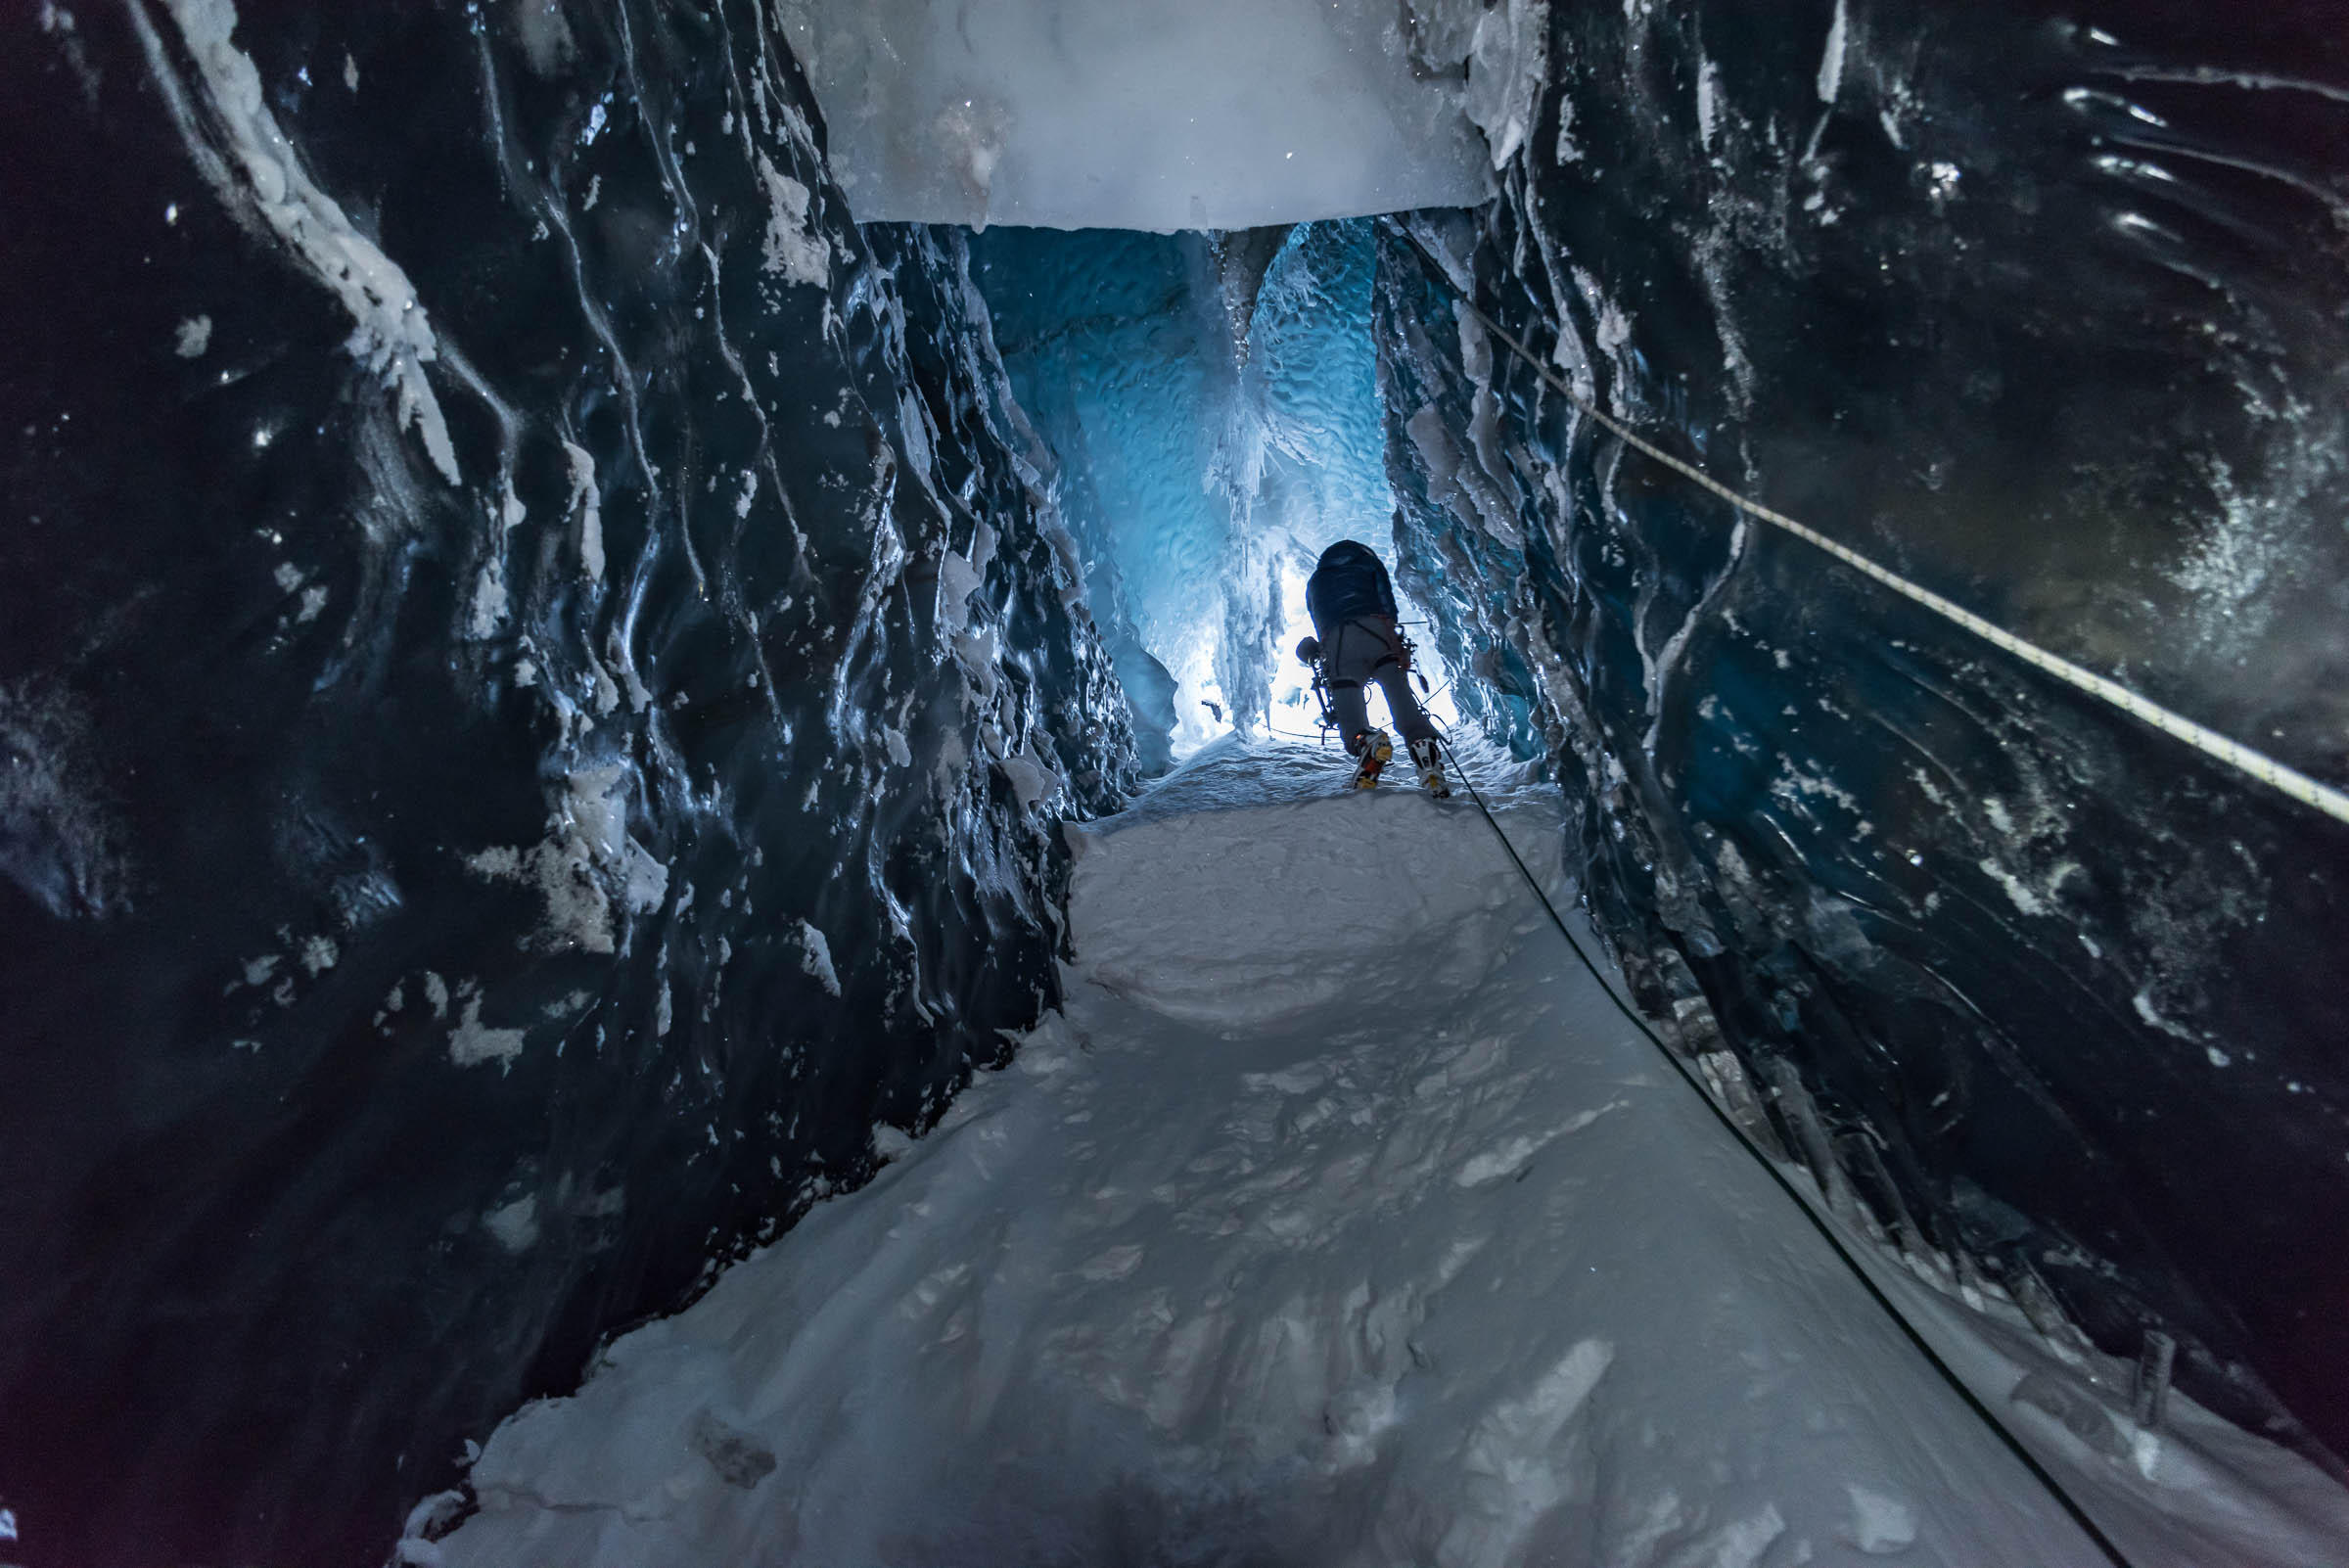 Man climbs up a shaft in the glacier, seen from below